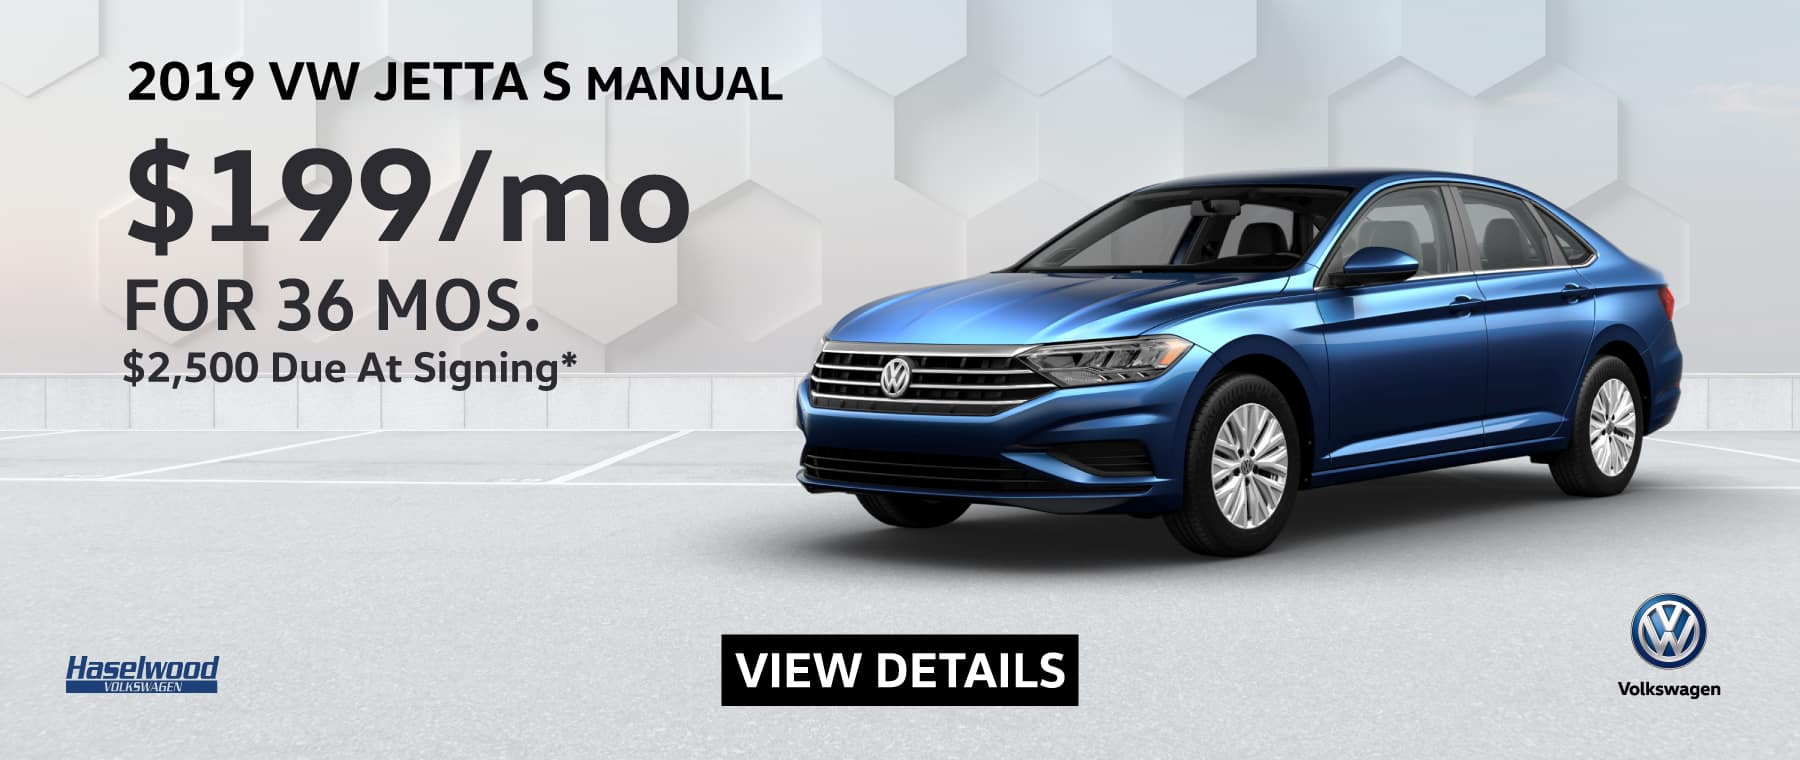 2019 Volkswagen Jetta S Manual  $199/mo. for 36 months $2,500 Due at Signing    * Offer valid on 2019 Volkswagen Jetta S Manual. $199 per mo. for 39 months. Lease with $2,500 due at signing; includes a $595 acquisition fee, lease through Volkswagen Credit. No security deposit required. Valid on VIN: 3VWN57BU5KM099492, 3VWN57BU4KM119022, 3VWN57BUXKM115492. For highly qualified customers on approved top tier credit through Volkswagen Credit. Lessee responsible for maintenance, excessive wear/tear and 20¢/mi over 10K mi/yr. Excludes state and local taxes, tags, registration and title, insurance and dealer charges. Subject to credit approval. 39 monthly payments required. Monthly lease payment based on MSRP of $20,160 and destination charges less a suggested dealer contribution resulting in a Gross capitalized cost of $18,920. Cap cost reduction: $1,240. A negotiable dealer documentary service fee of up to $150 may be added to the sale price or capitalized cost. See dealer for complete details and restrictions. 6 years/72,000 miles (whichever occurs first). New Vehicle Limited Warranty on MY2018 and newer VW vehicles, excluding e-Golf. See owner's literature or dealer for warranty exclusions and limitations. Exp. 9/3/2019.